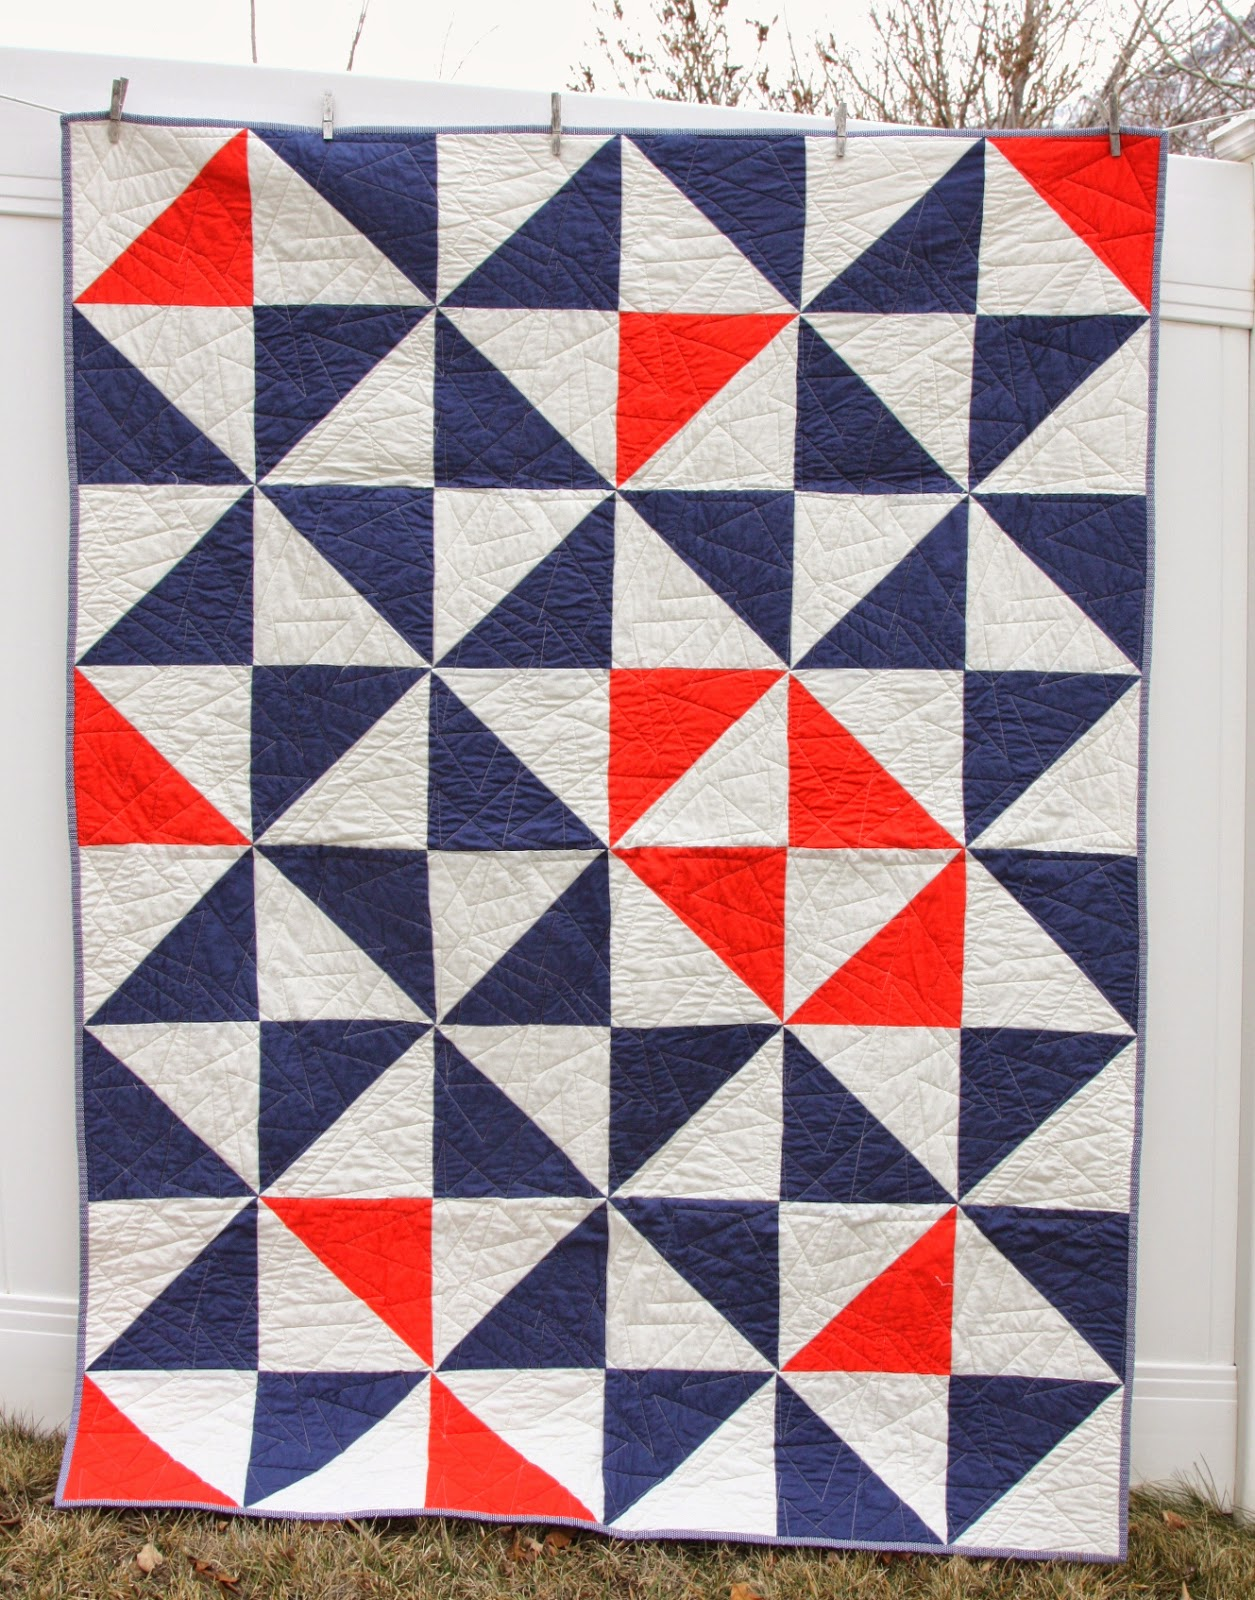 Quilt Patterns Using Squares And Triangles : Half Square Triangle baby quilt pattern